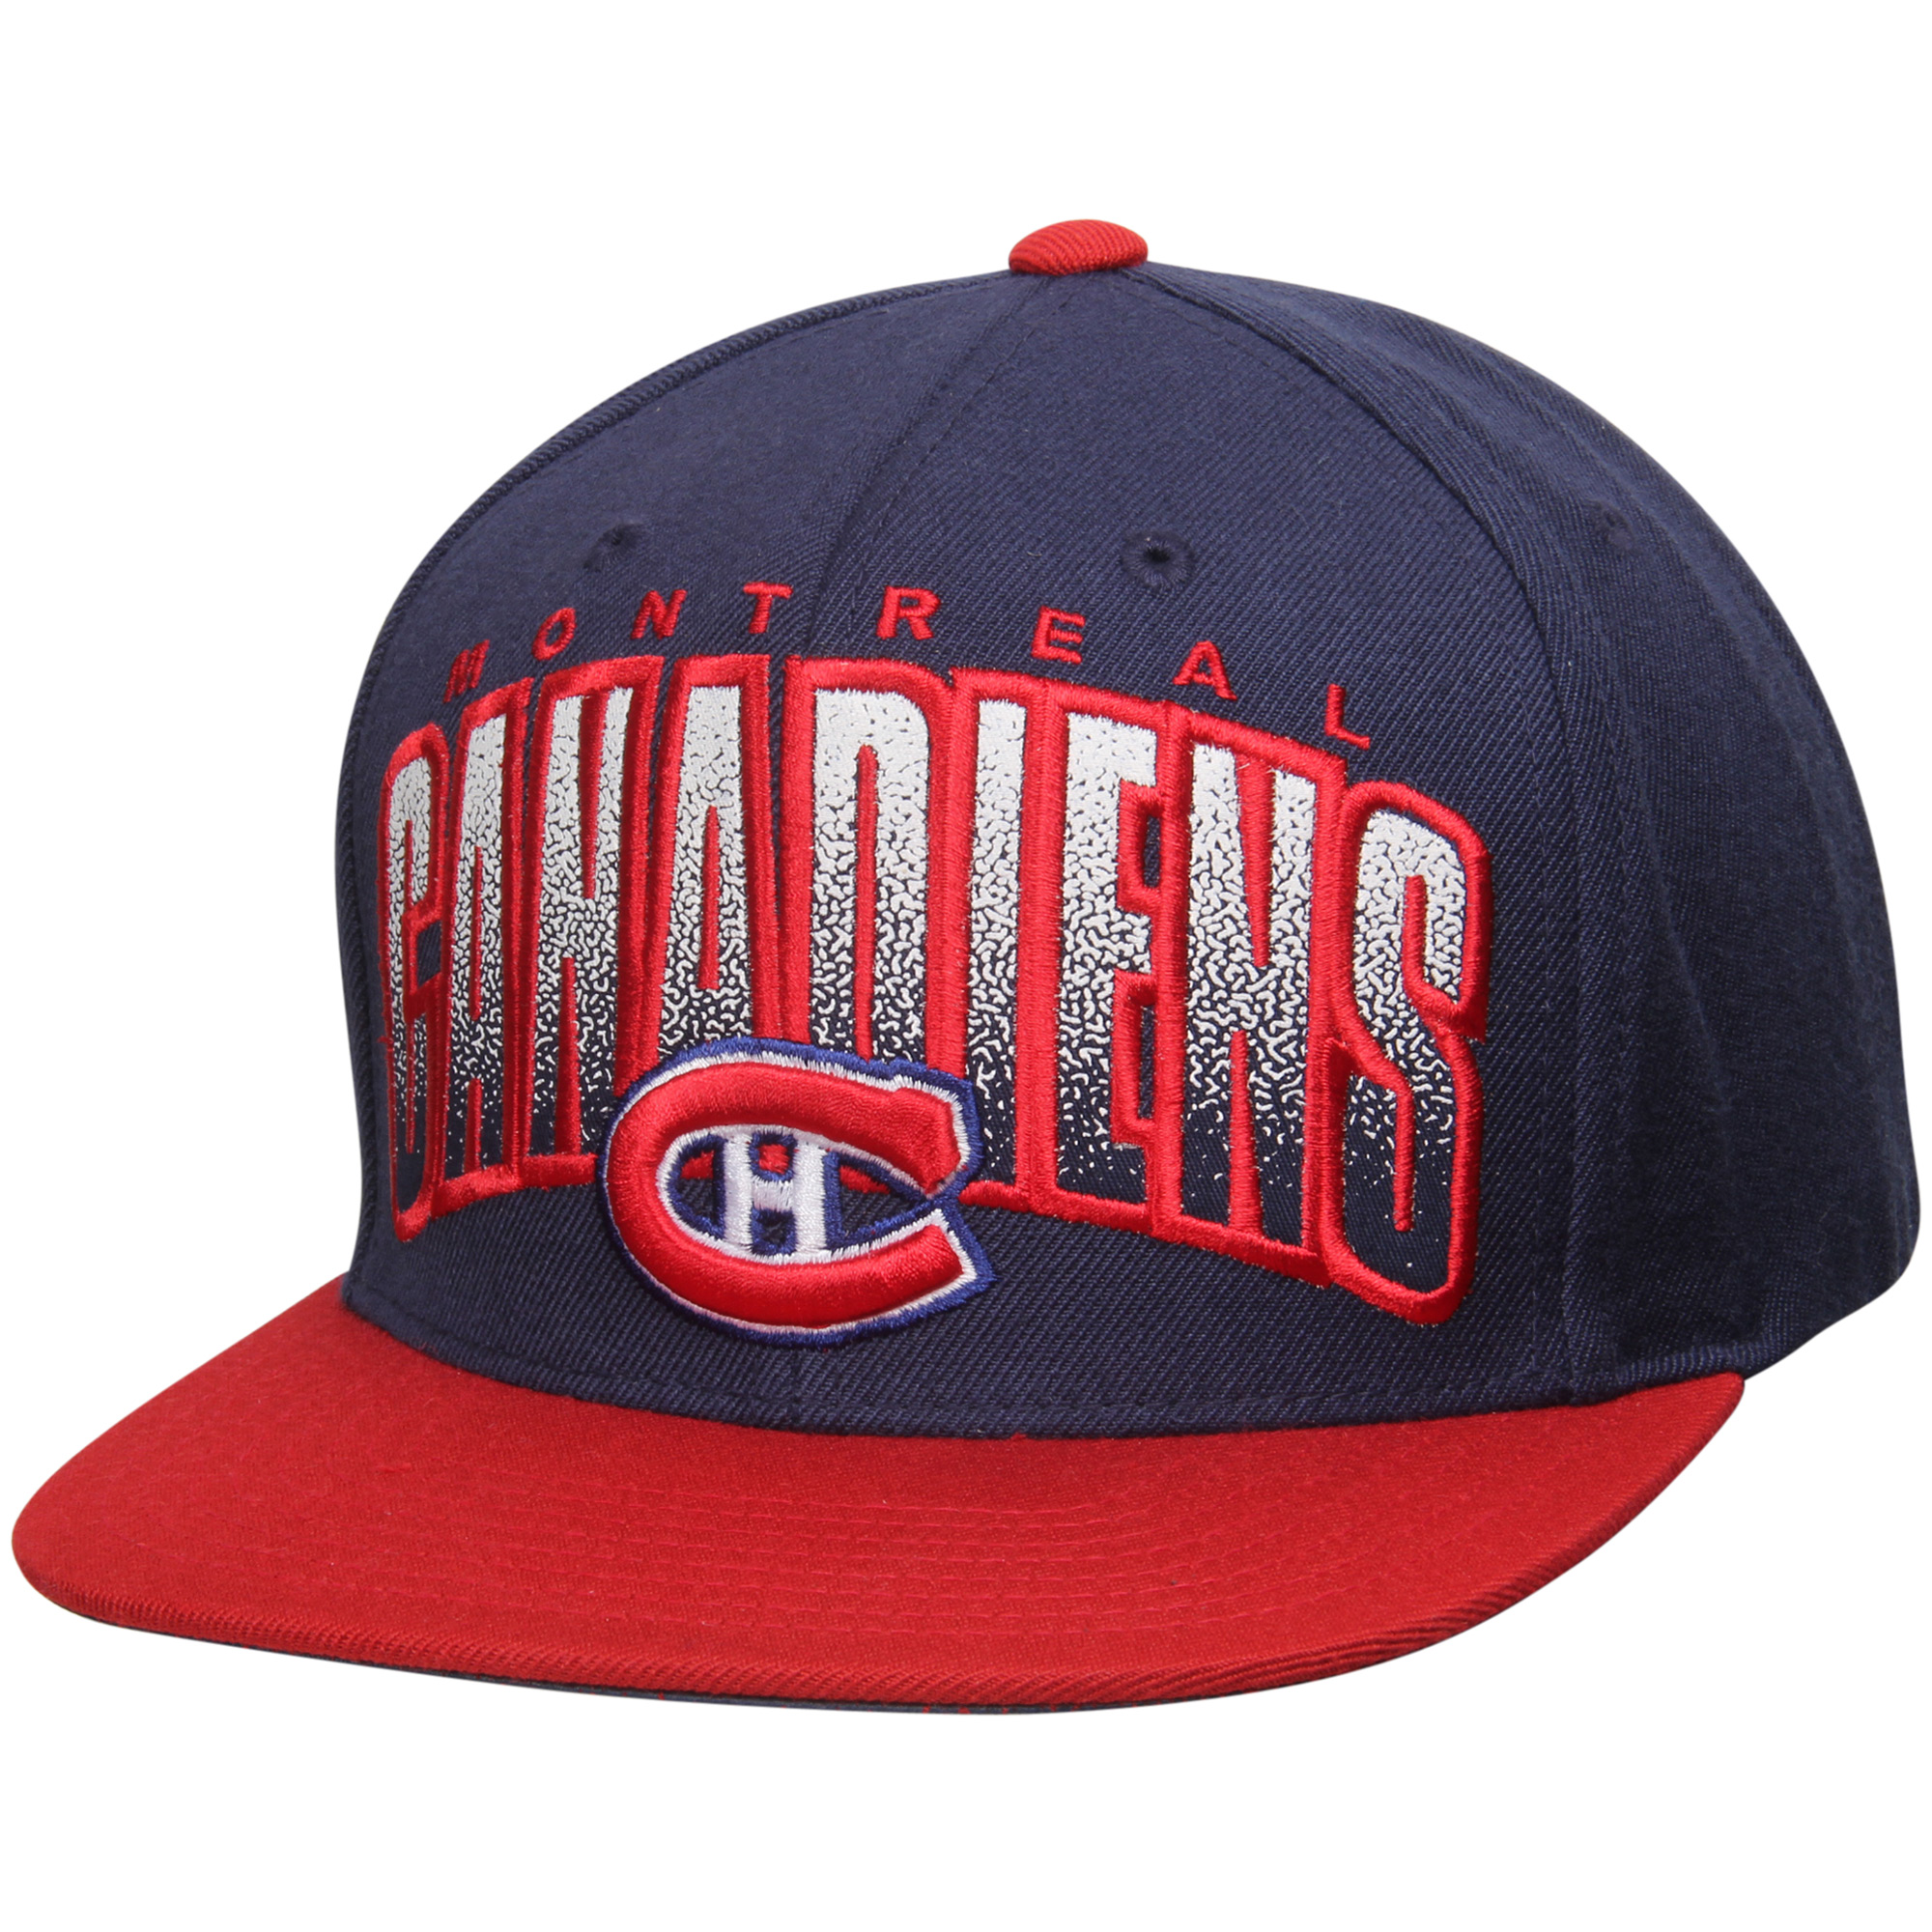 Montreal Canadiens Mitchell & Ness Current Logo Double Bonus Snapback Adjustable Hat - Navy/Red - OSFA